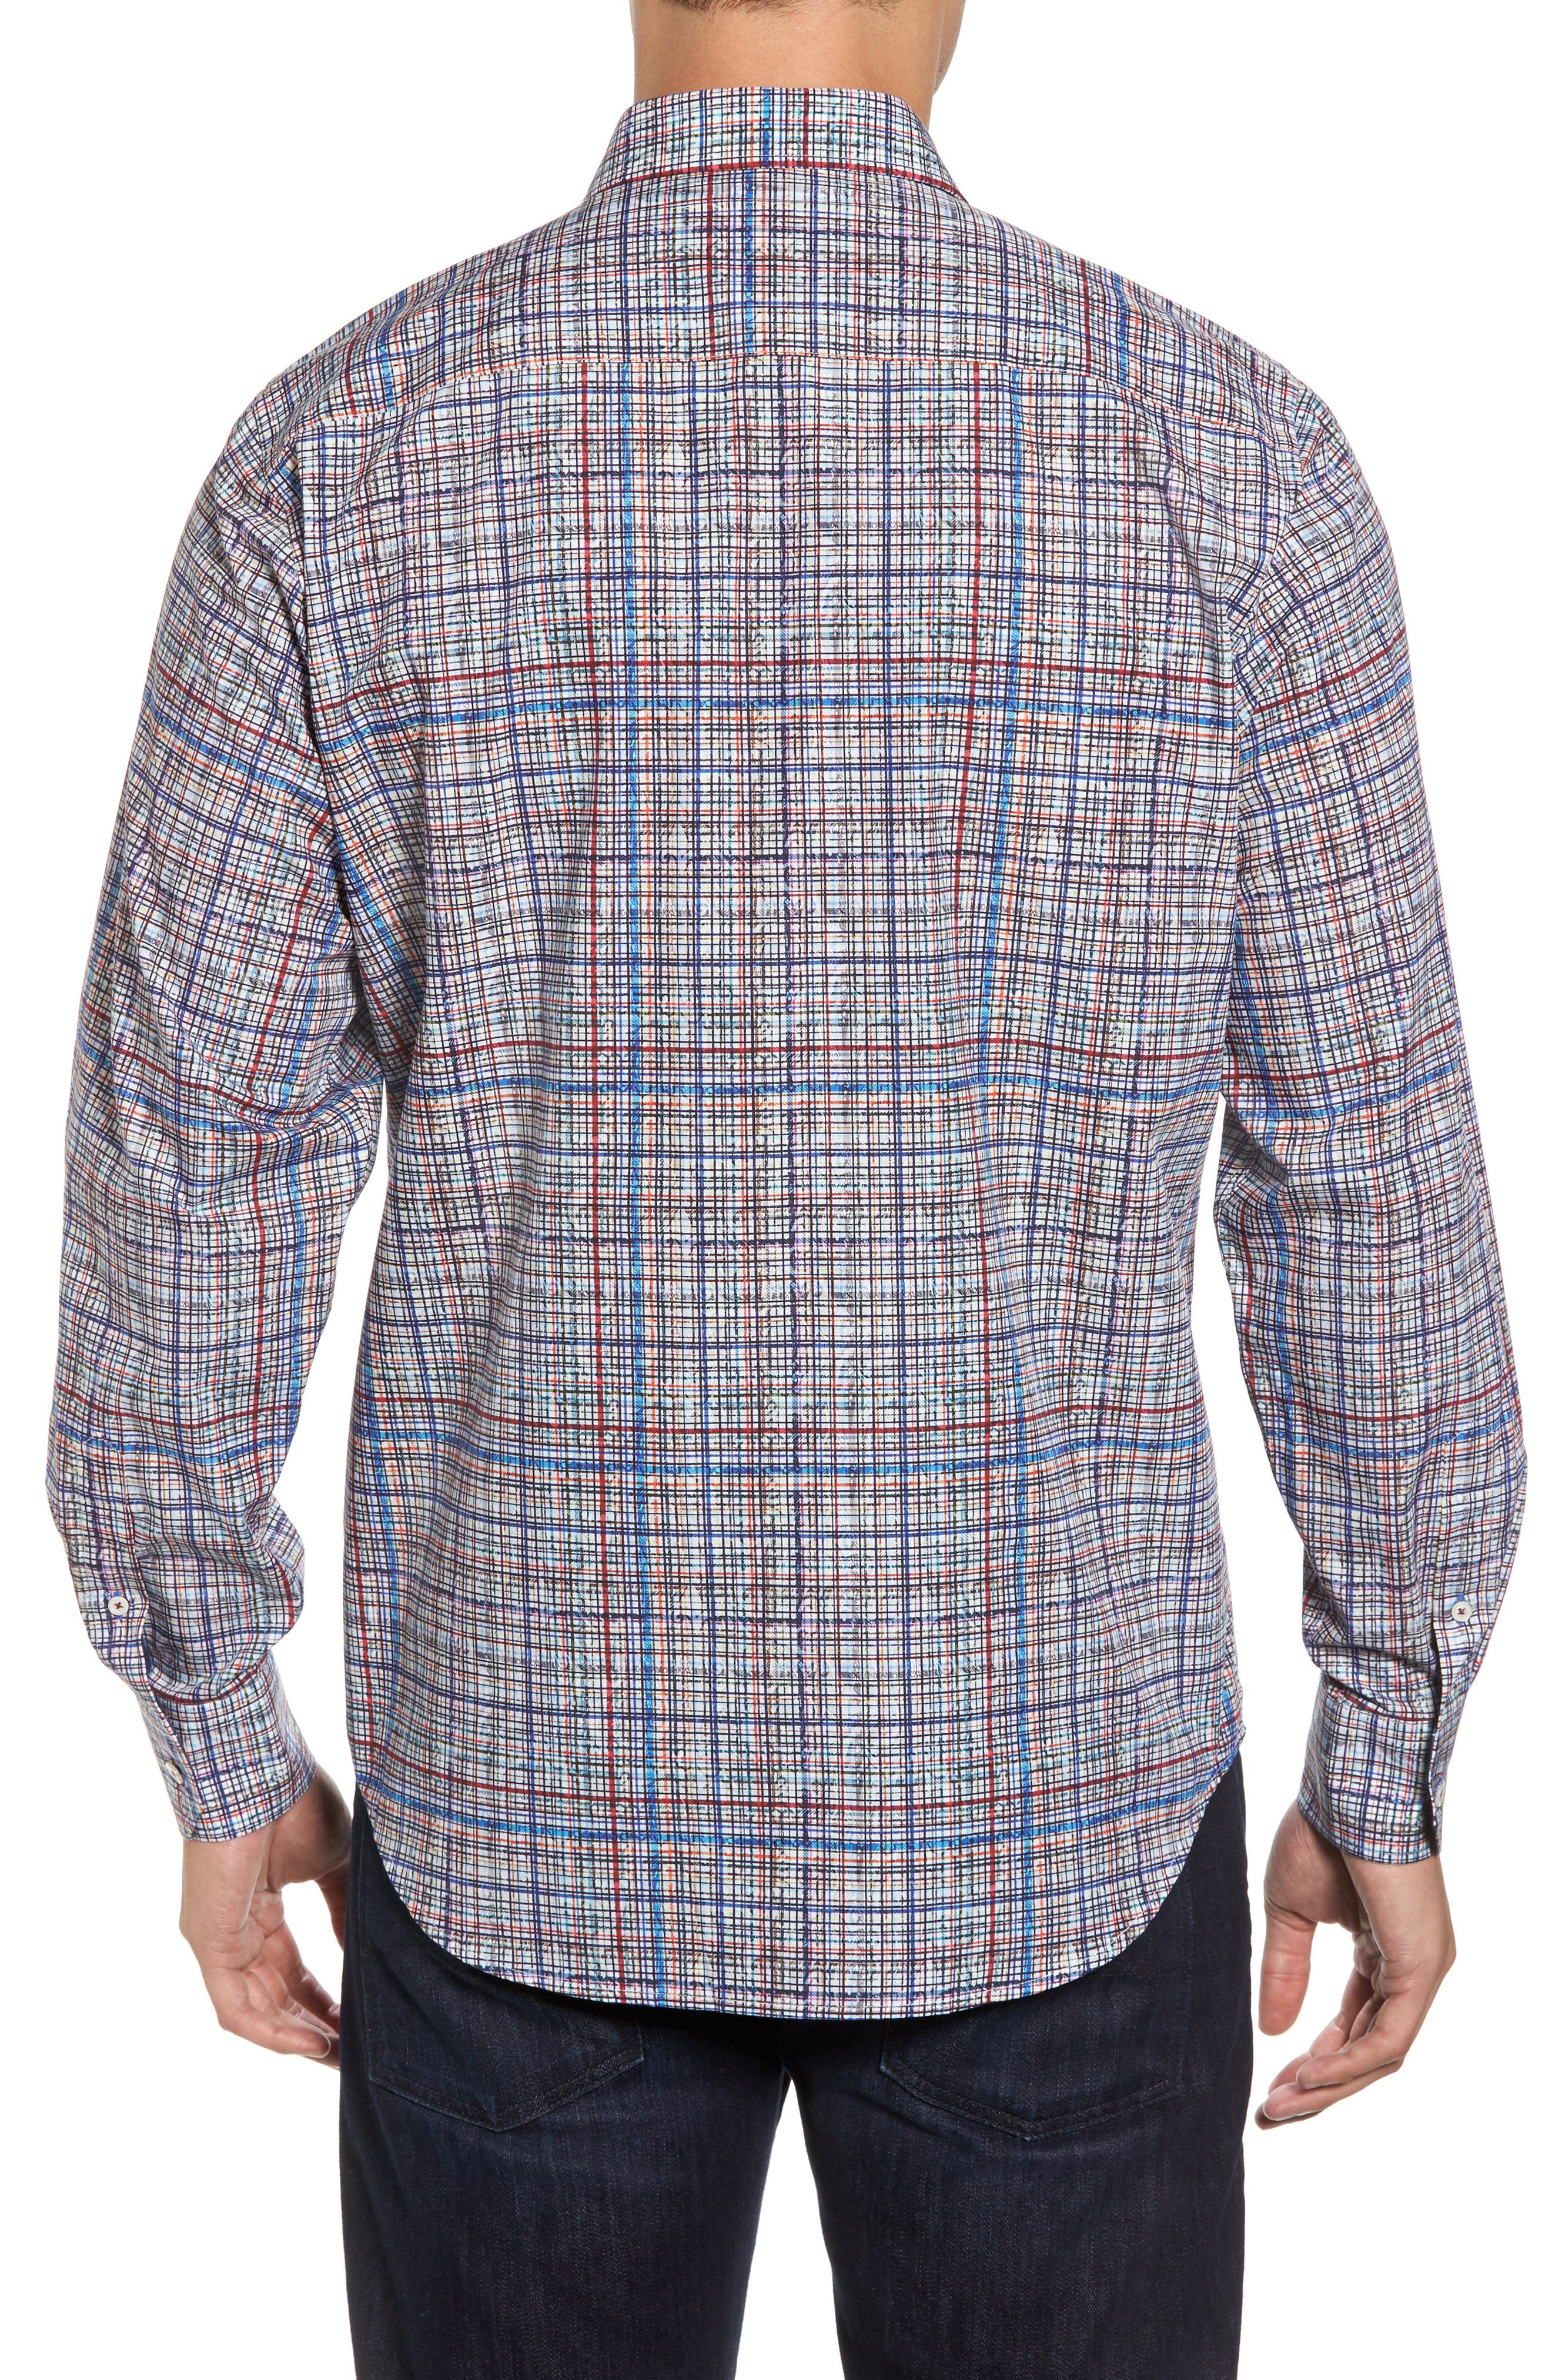 Classic Fit Abstract Plaid Sport Shirt,                             Alternate thumbnail 2, color,